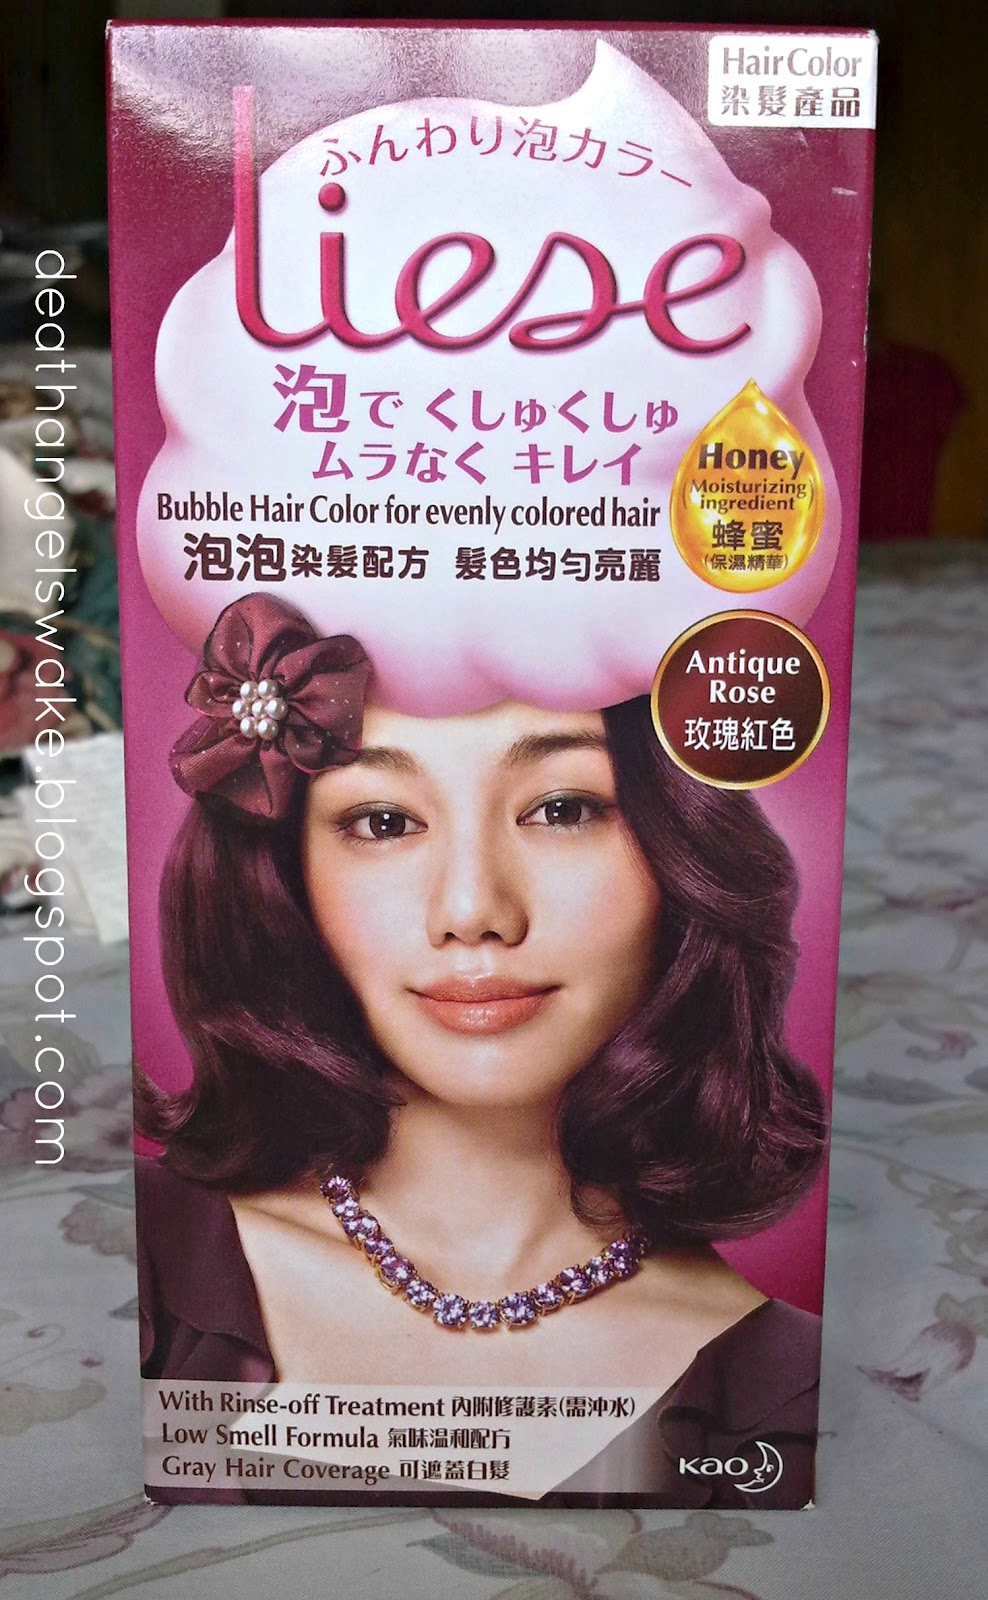 Chronicles Of Chean Kao Liese Bubble Hair Color In Antique Rose